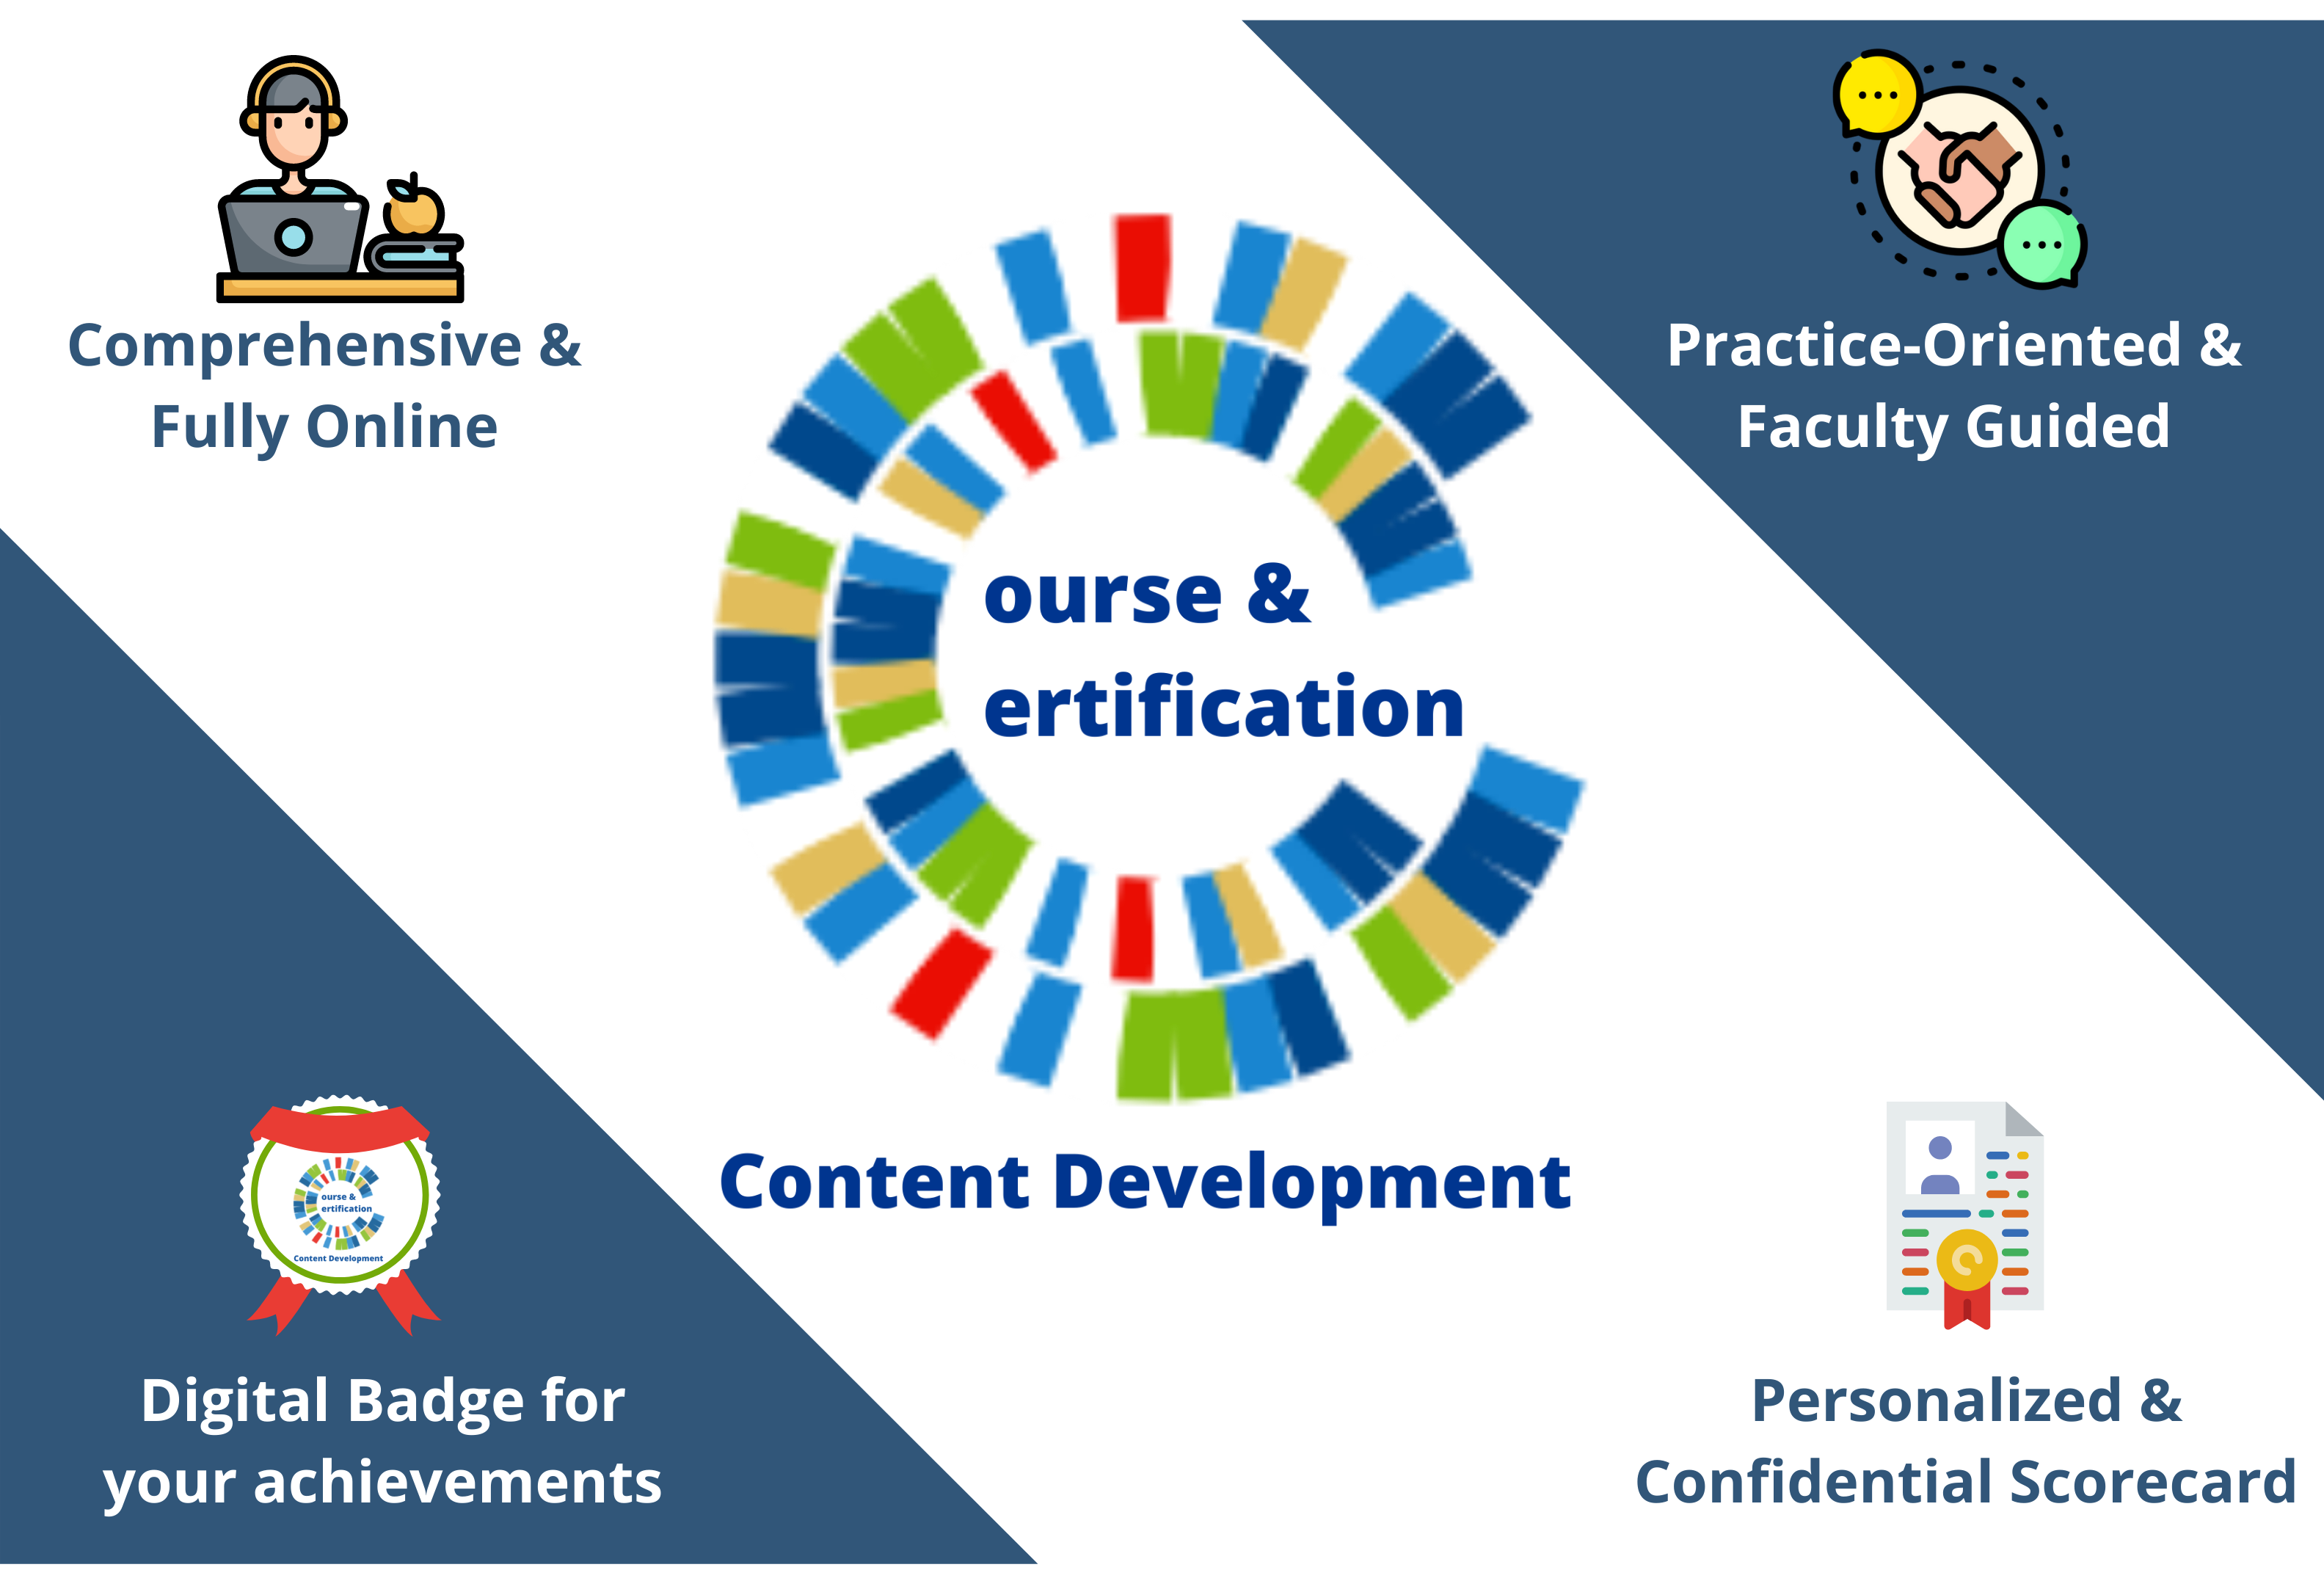 """Comprehensive & Fully Online CENTA® Course and Certification in """"Content Development and Planning"""" Practice-Oriented & Faculty Guided Personalized & Confidential Scorecard  Digital Badge for  your achievements"""